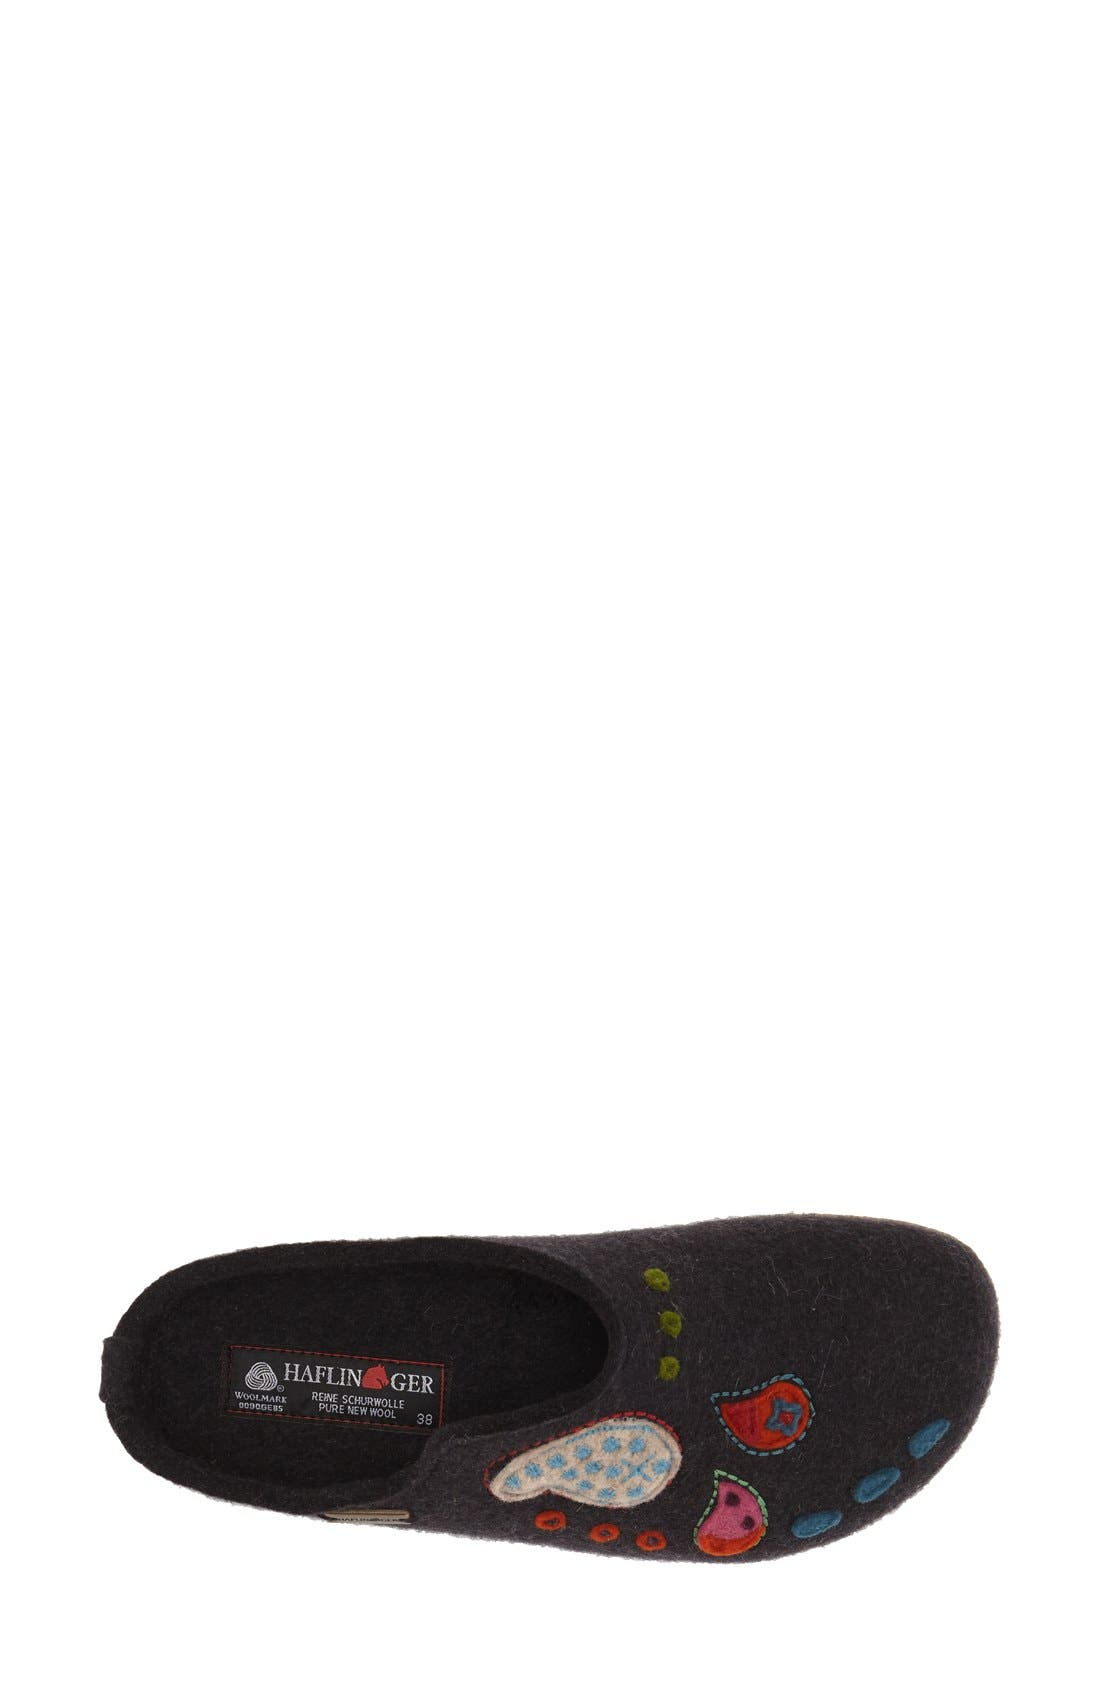 Paisley Slipper,                             Alternate thumbnail 3, color,                             020